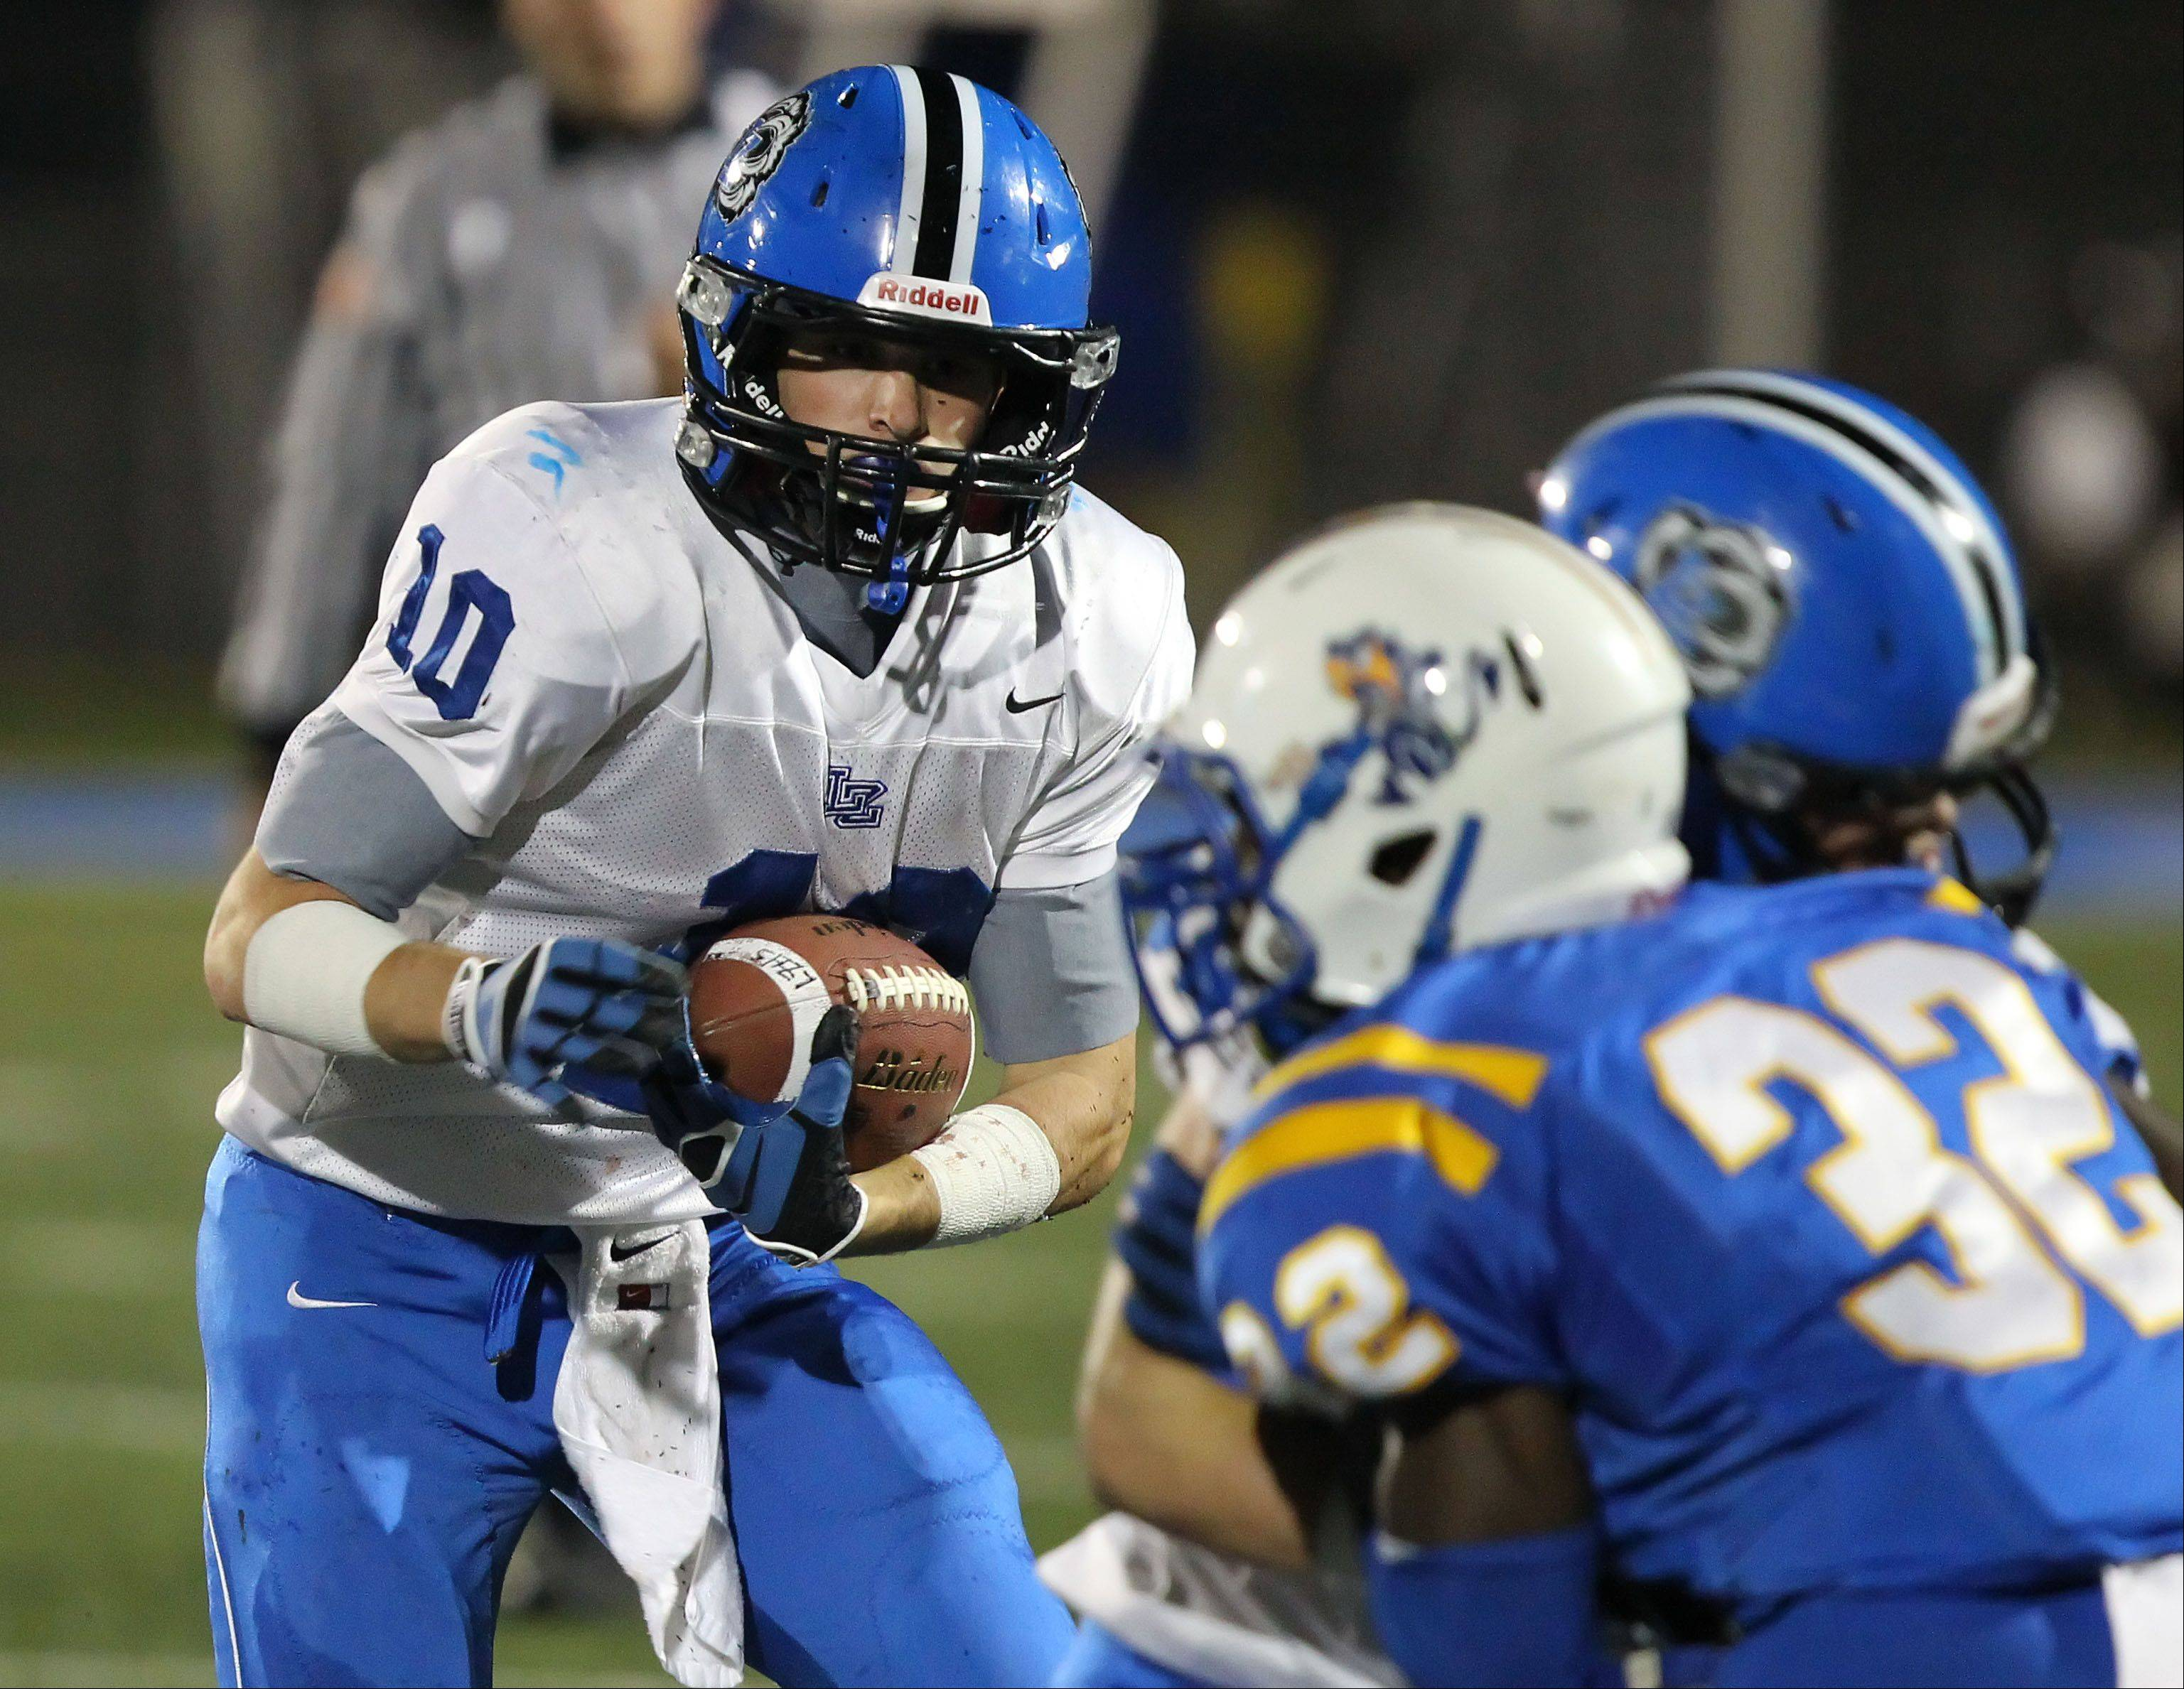 Lake Zurich's Jake Stauner looks for an opening.